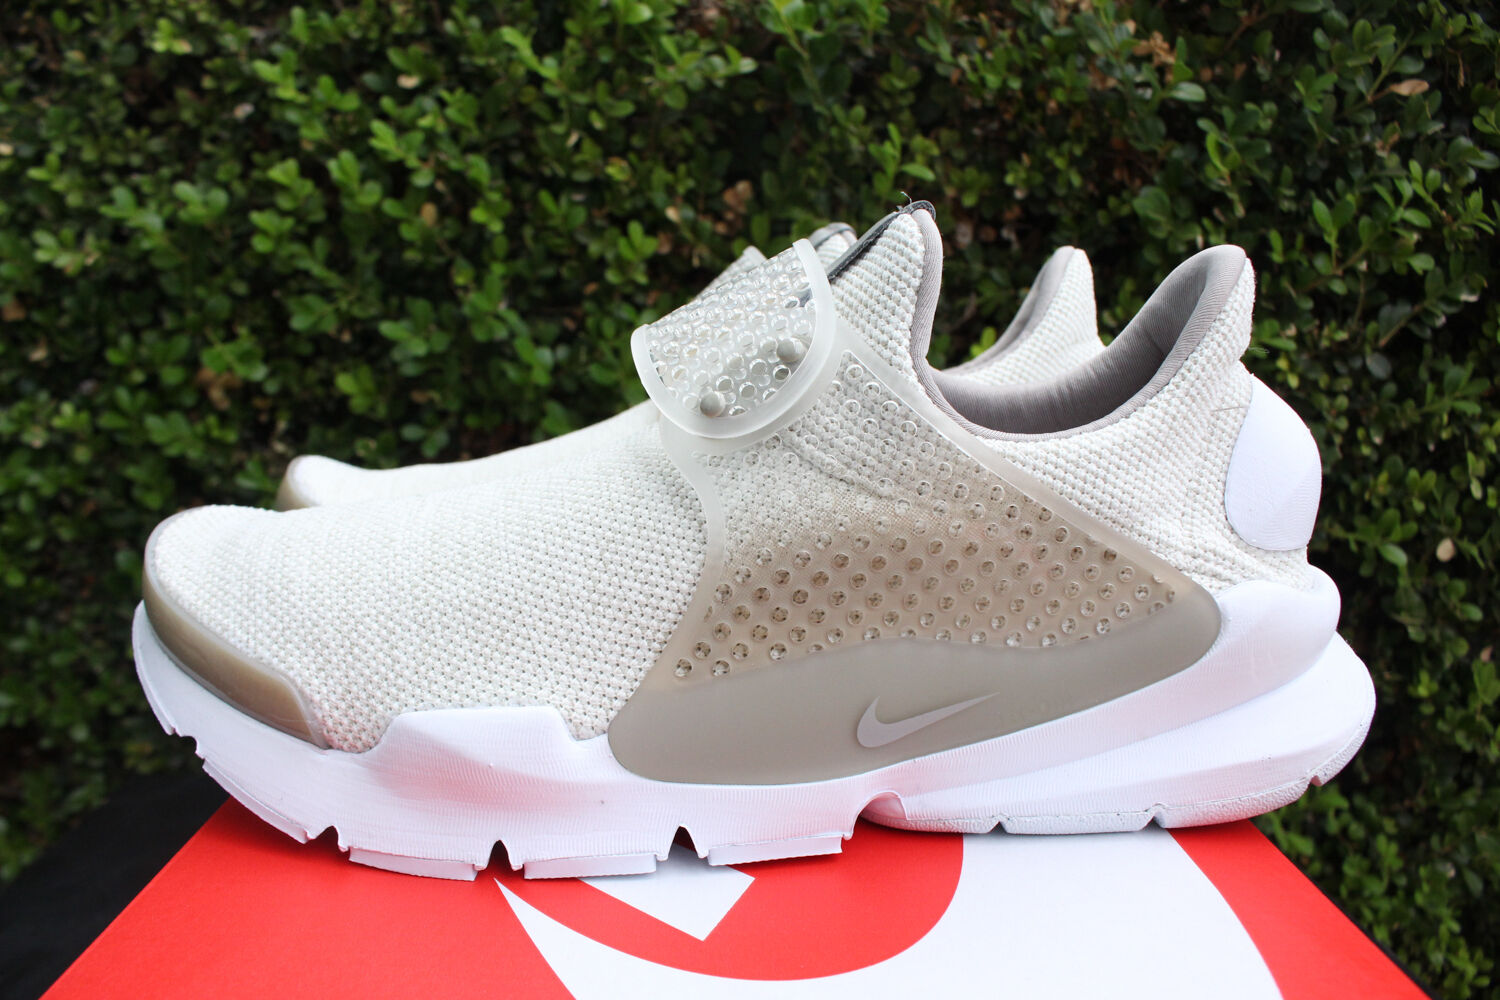 NIKE SOCK DART SE SZ 8 COBBLESTONE LIGHT OREWOOD TAN WHITE KHAKI 911404 100